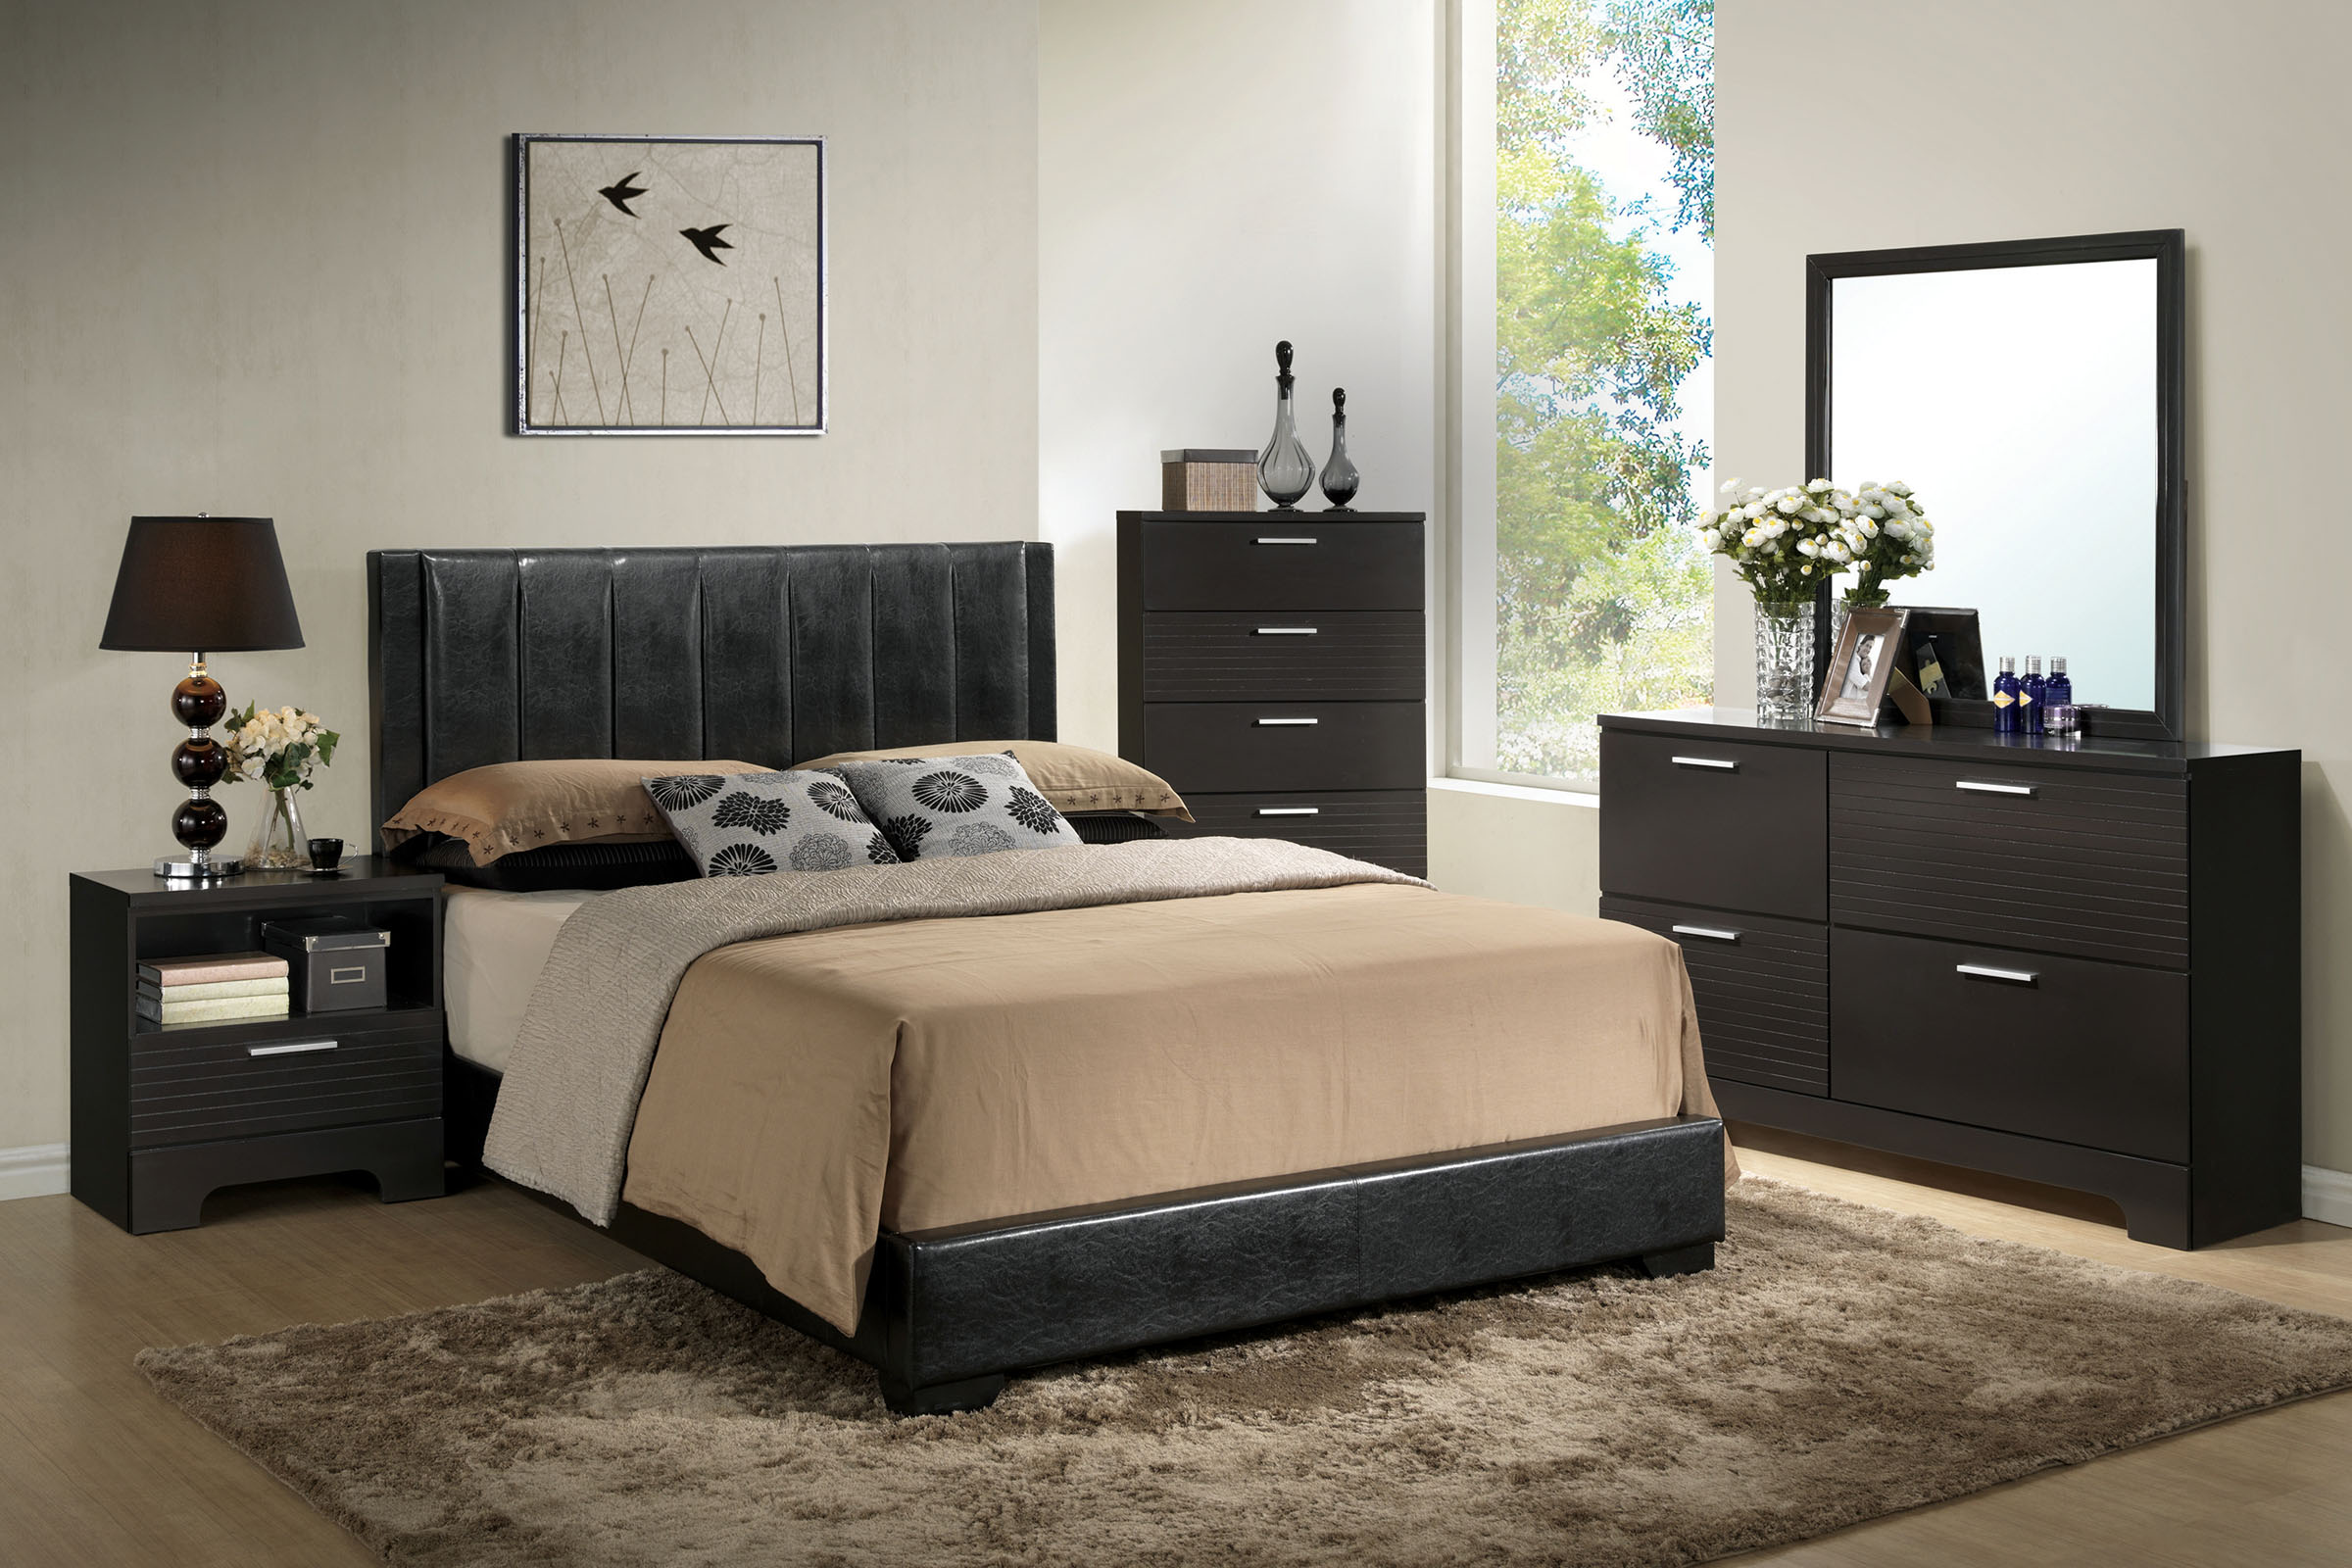 burbank 5-piece king bedroom set